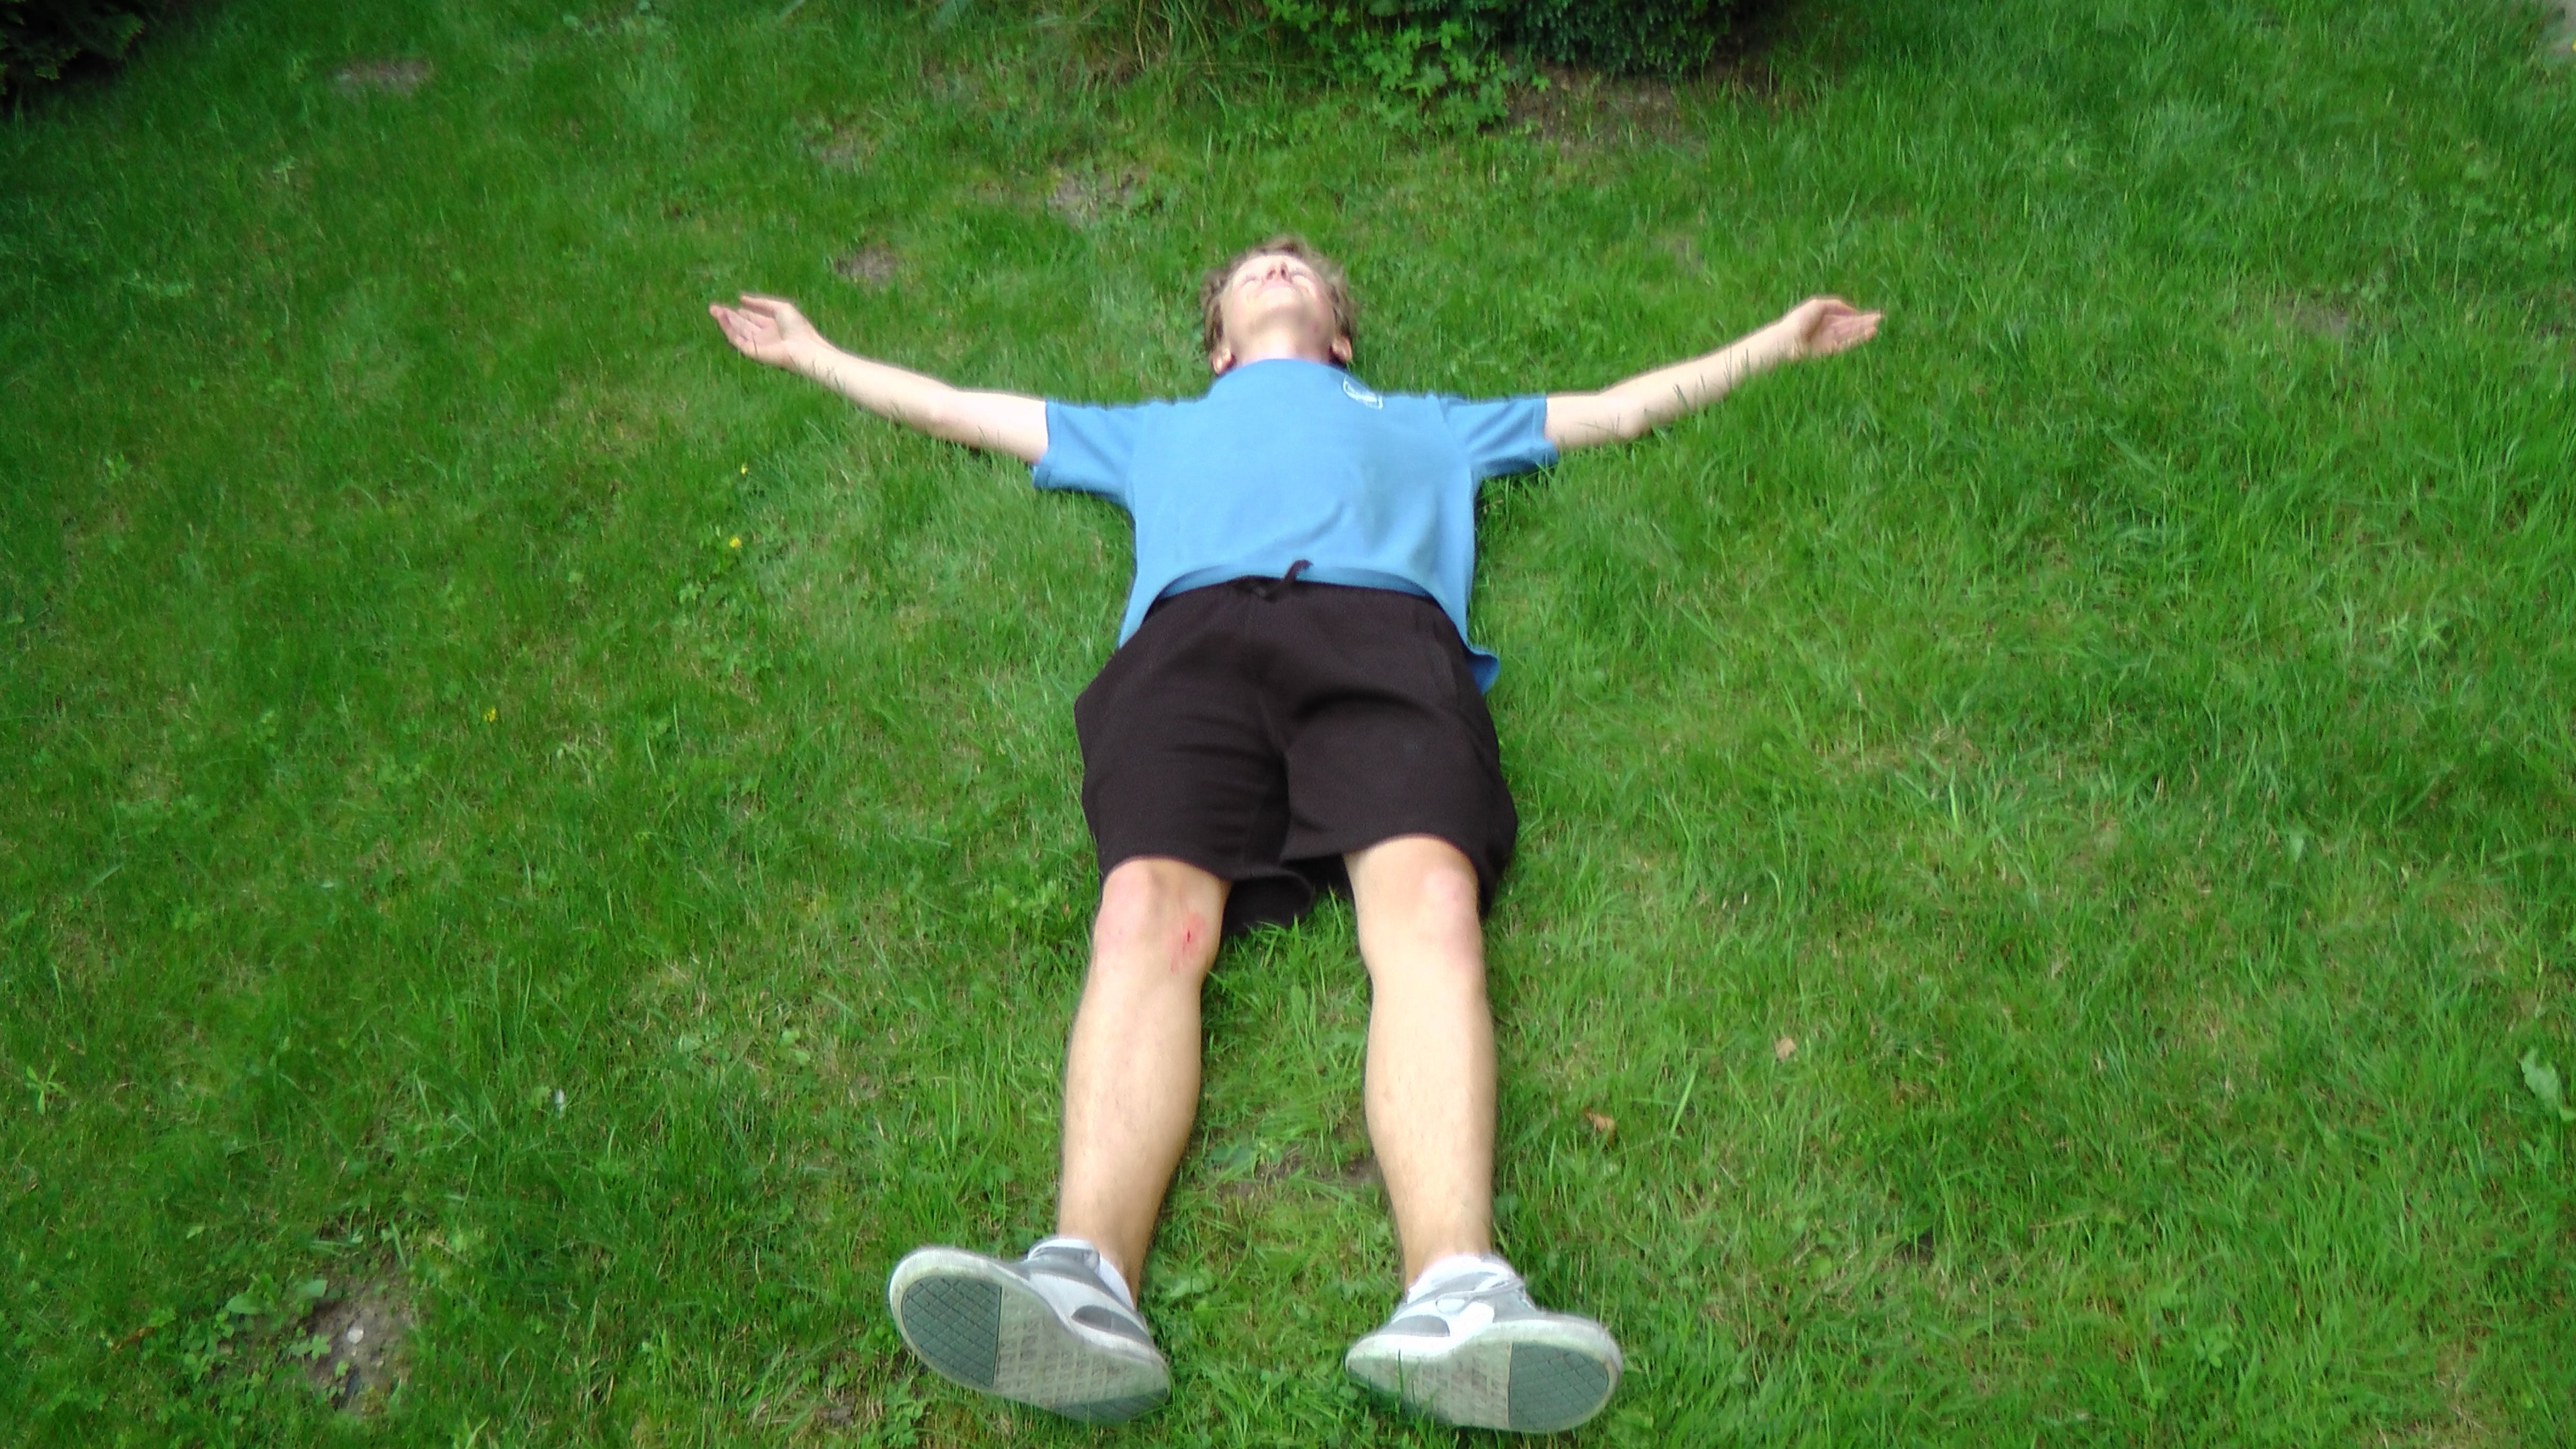 Free stock photo of death, funny, grass, lawn